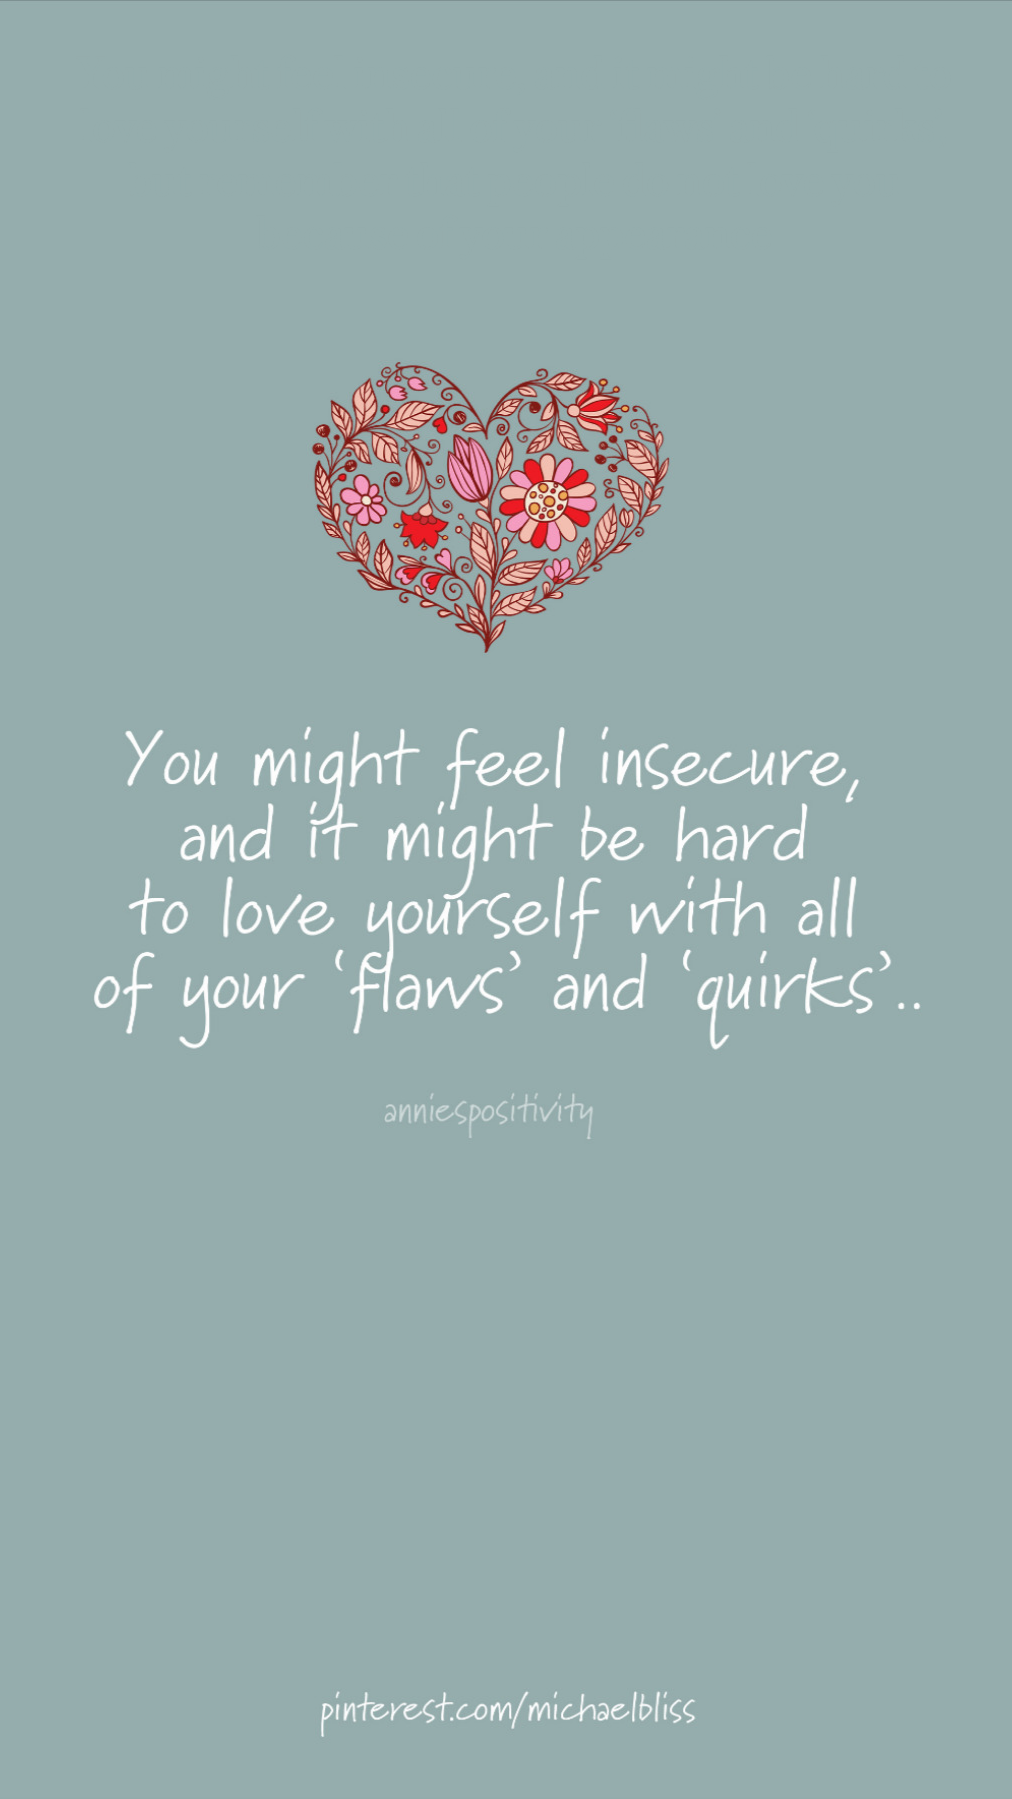 You might feel insecure, and it might be hard to love yourself with all of your'flaws' and'quirks', but remember that people do not love you because of your appearance